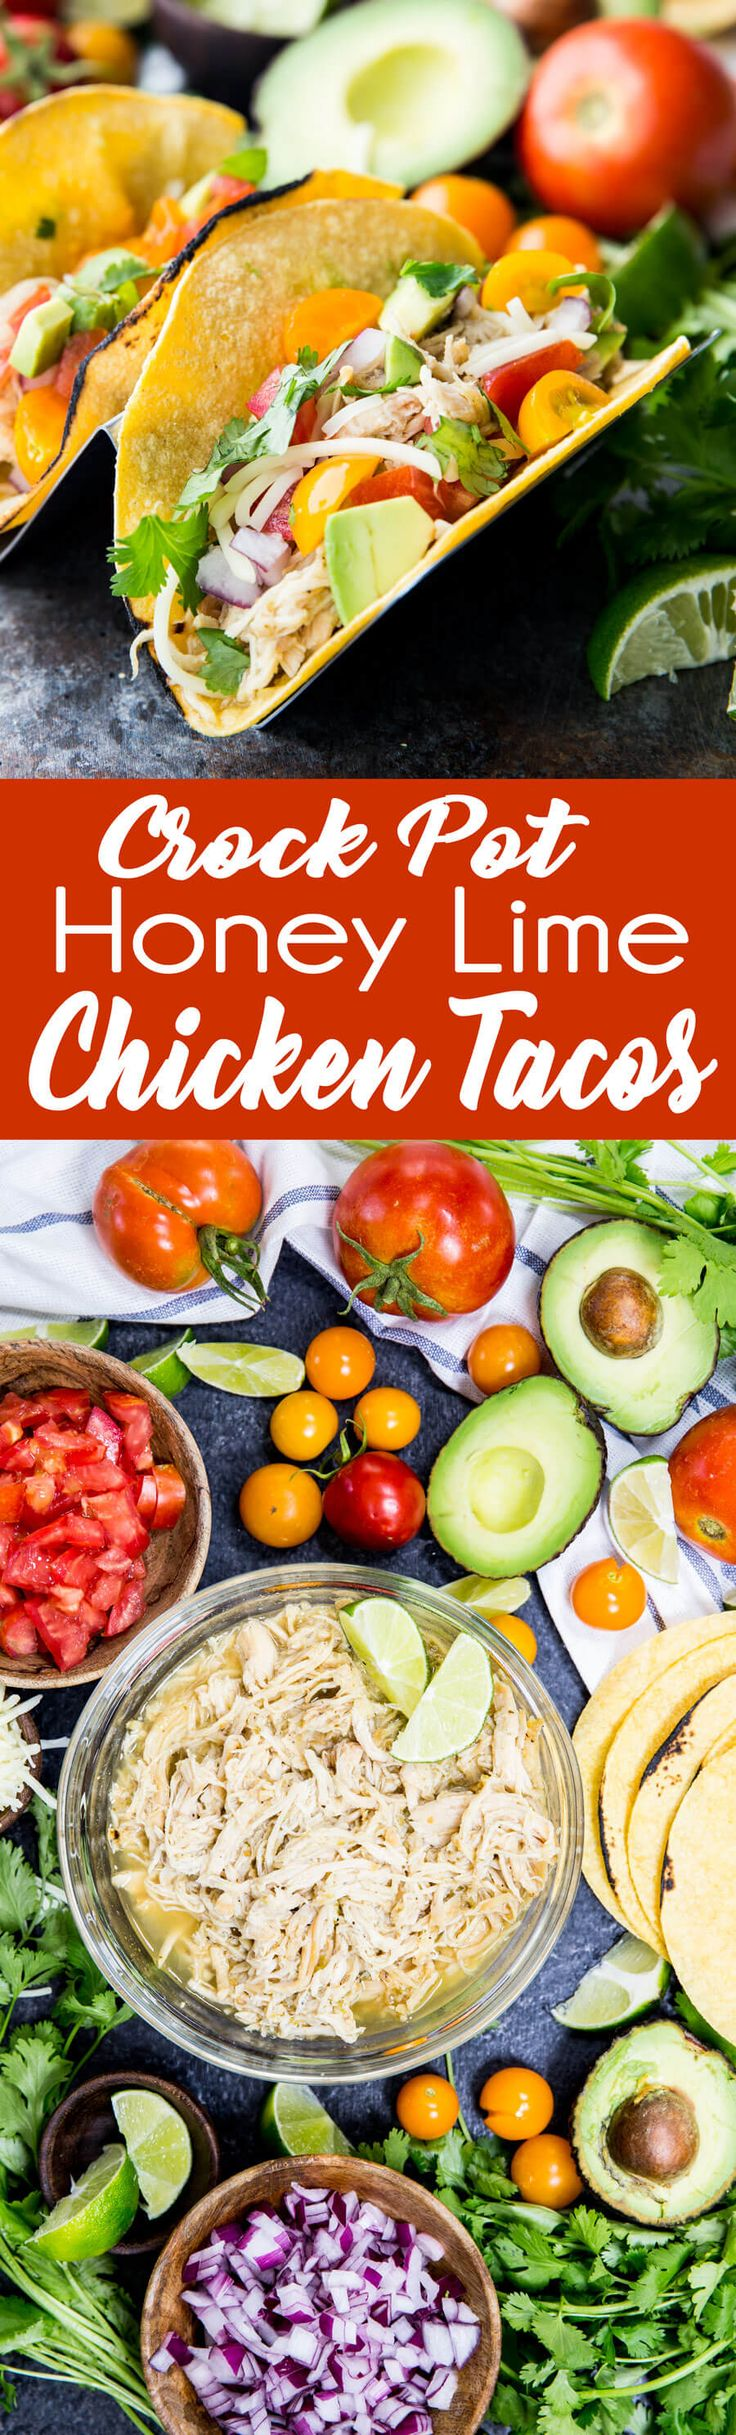 These easy to make slow cooker honey lime chicken tacos are the perfect tailgating food. They are low cost, they feed a crowd, and taste amazing! #ad #switchandsave#crockpot #crockpotrecipies #tacos #tacotuesday #honeylime #chickentacos